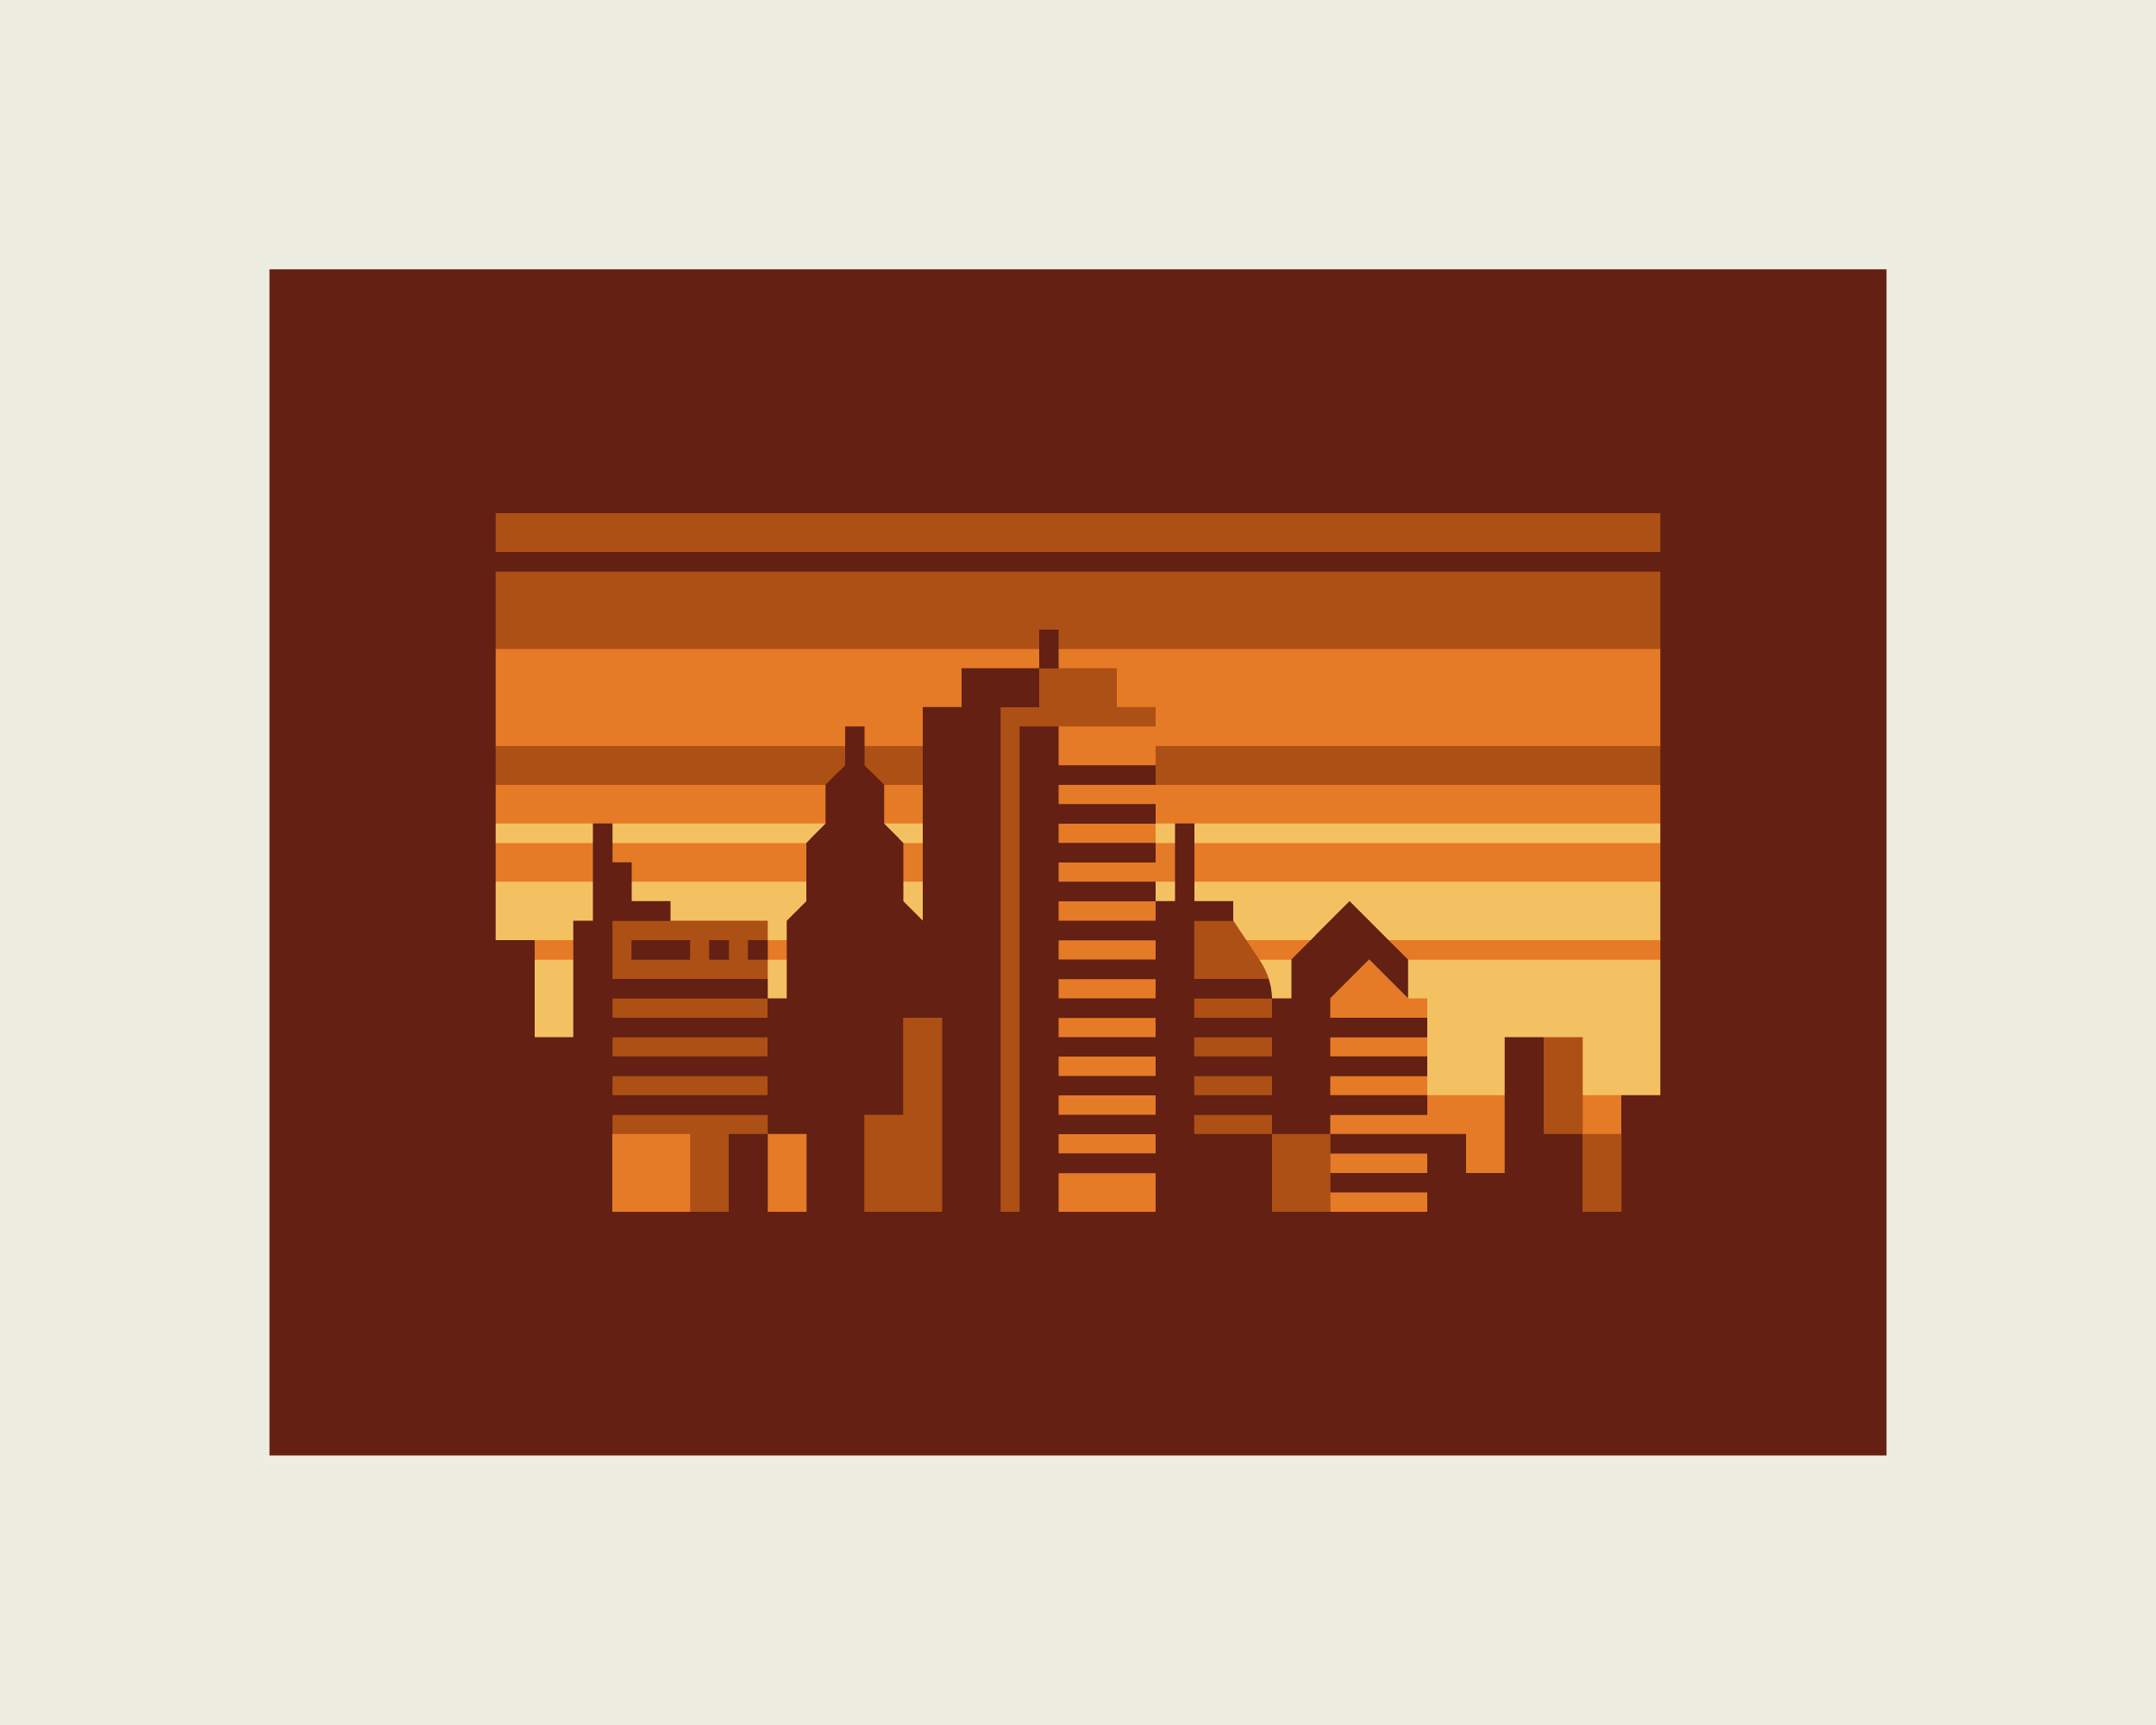 Abstract Cities: Amber design by Matt Anderson and Canopy Design. Limited color, geometric city skyline.